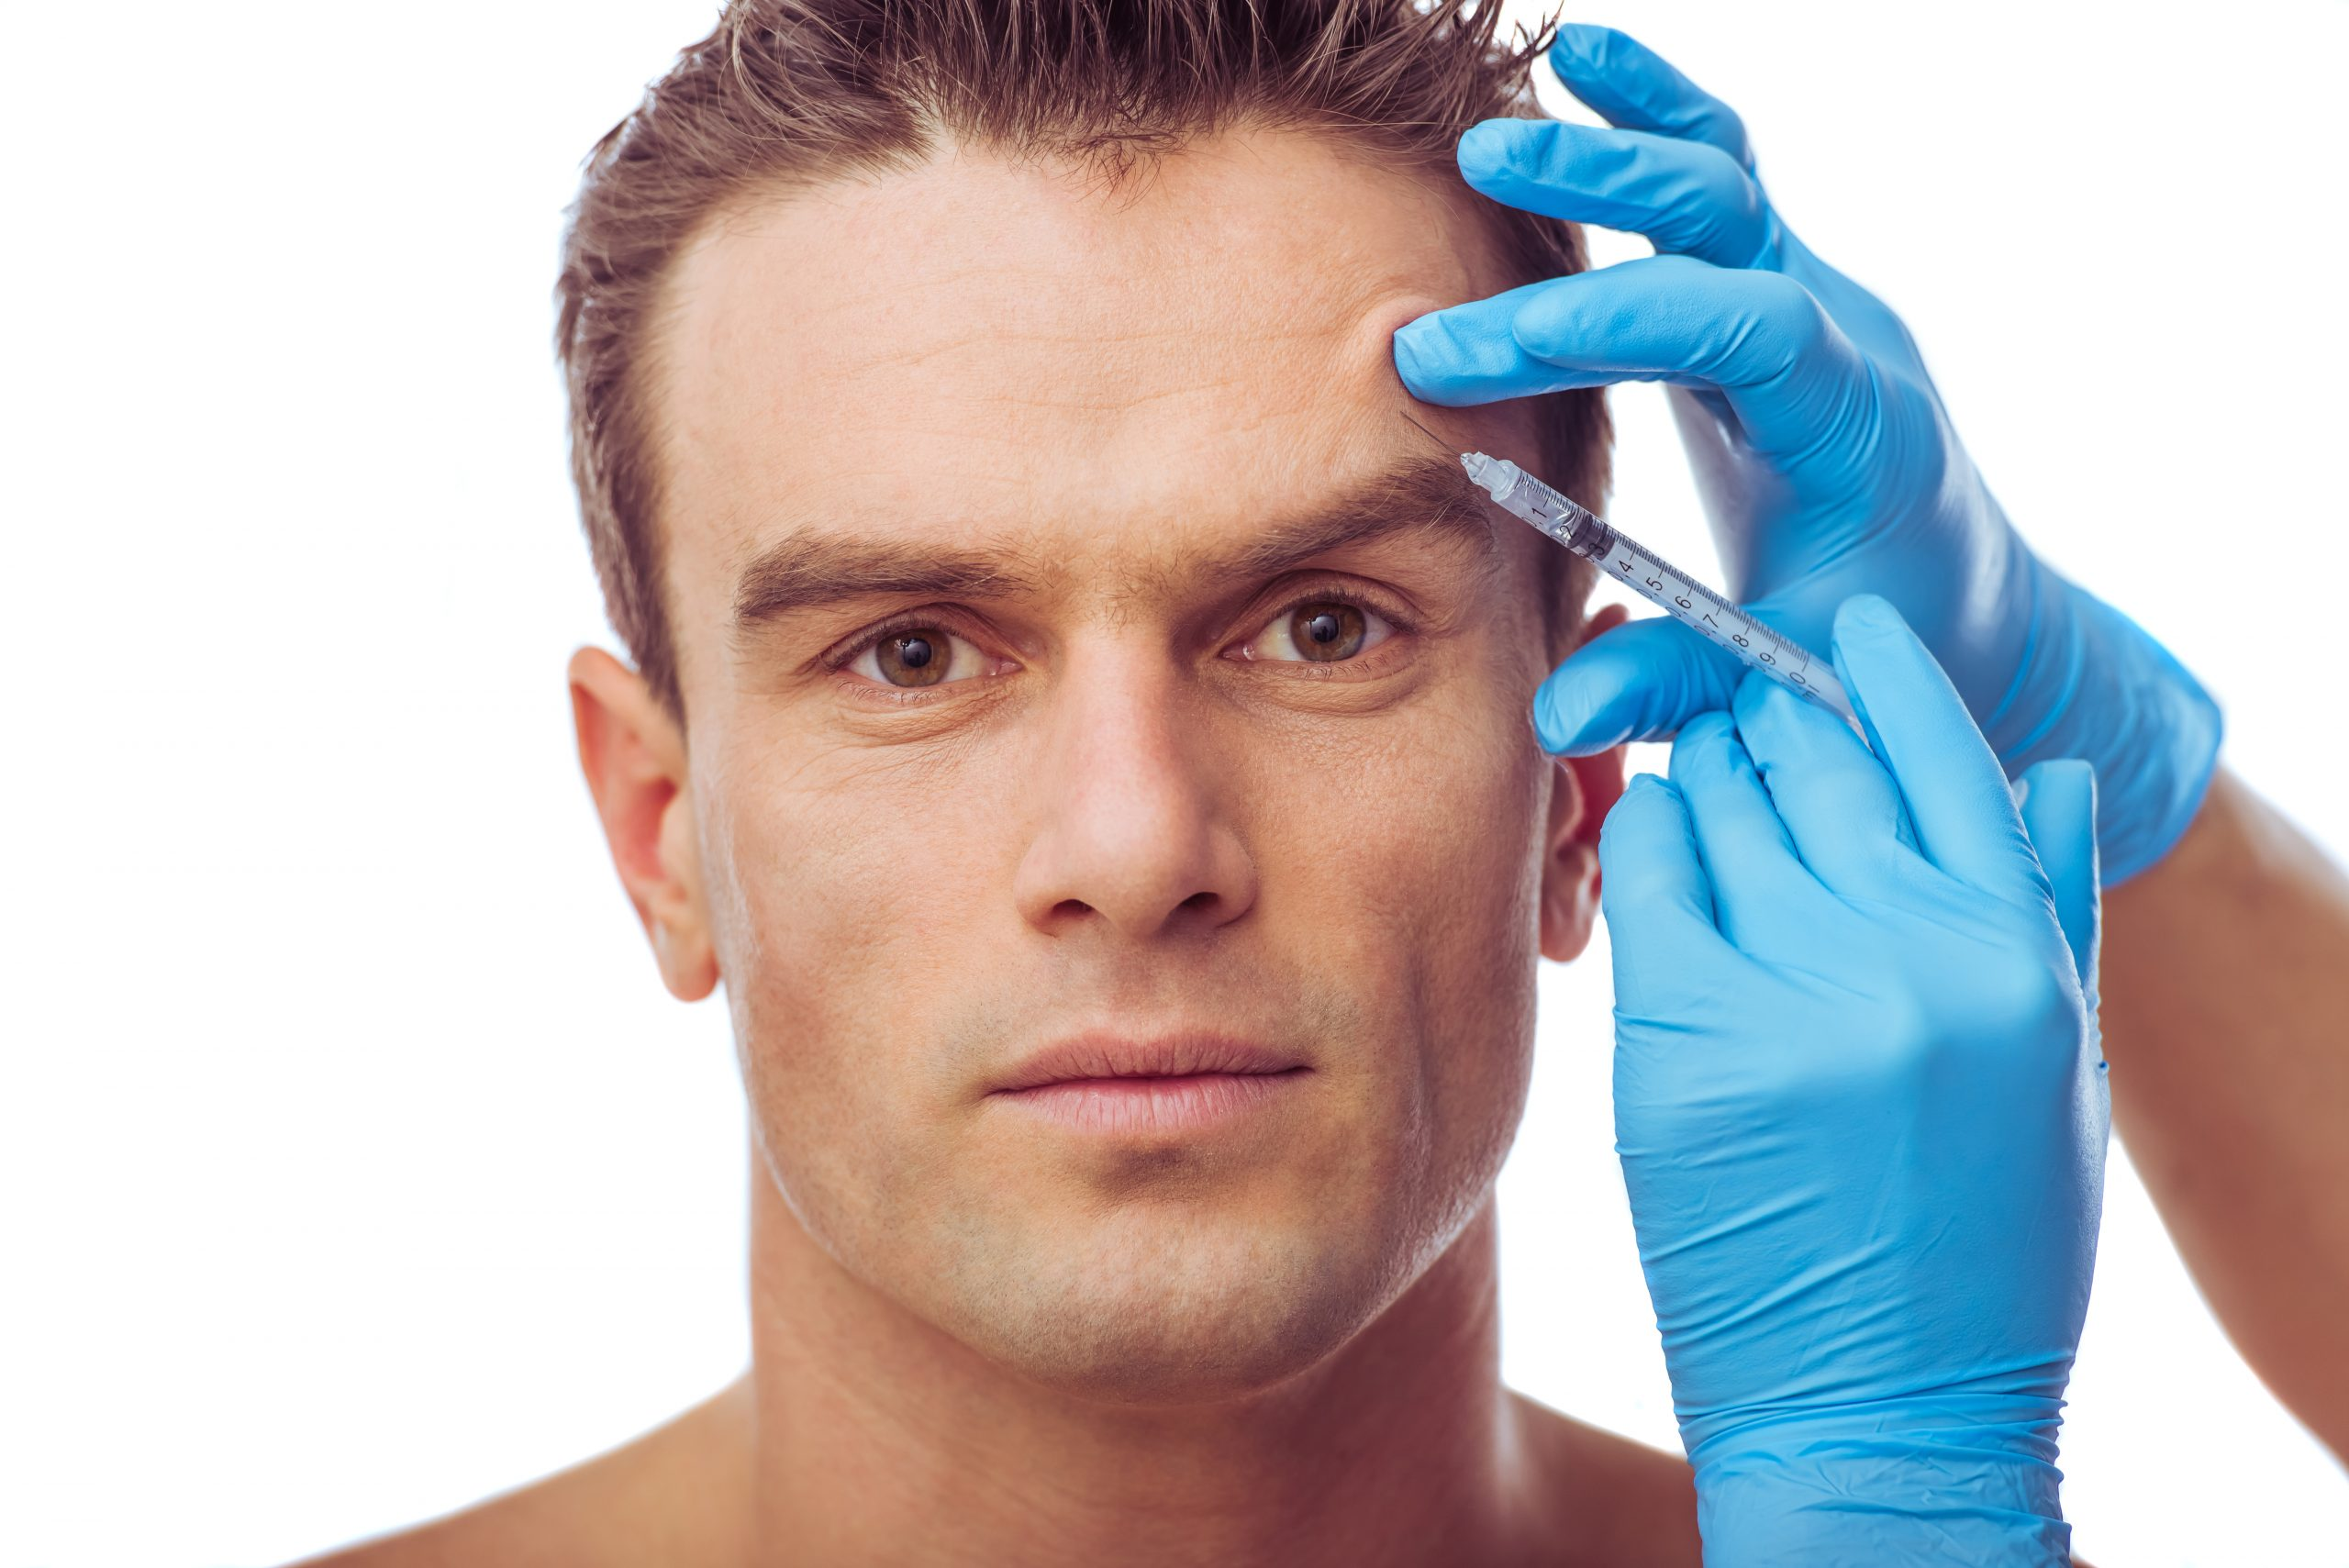 Portrait of handsome man having injections of botox, isolated on white background